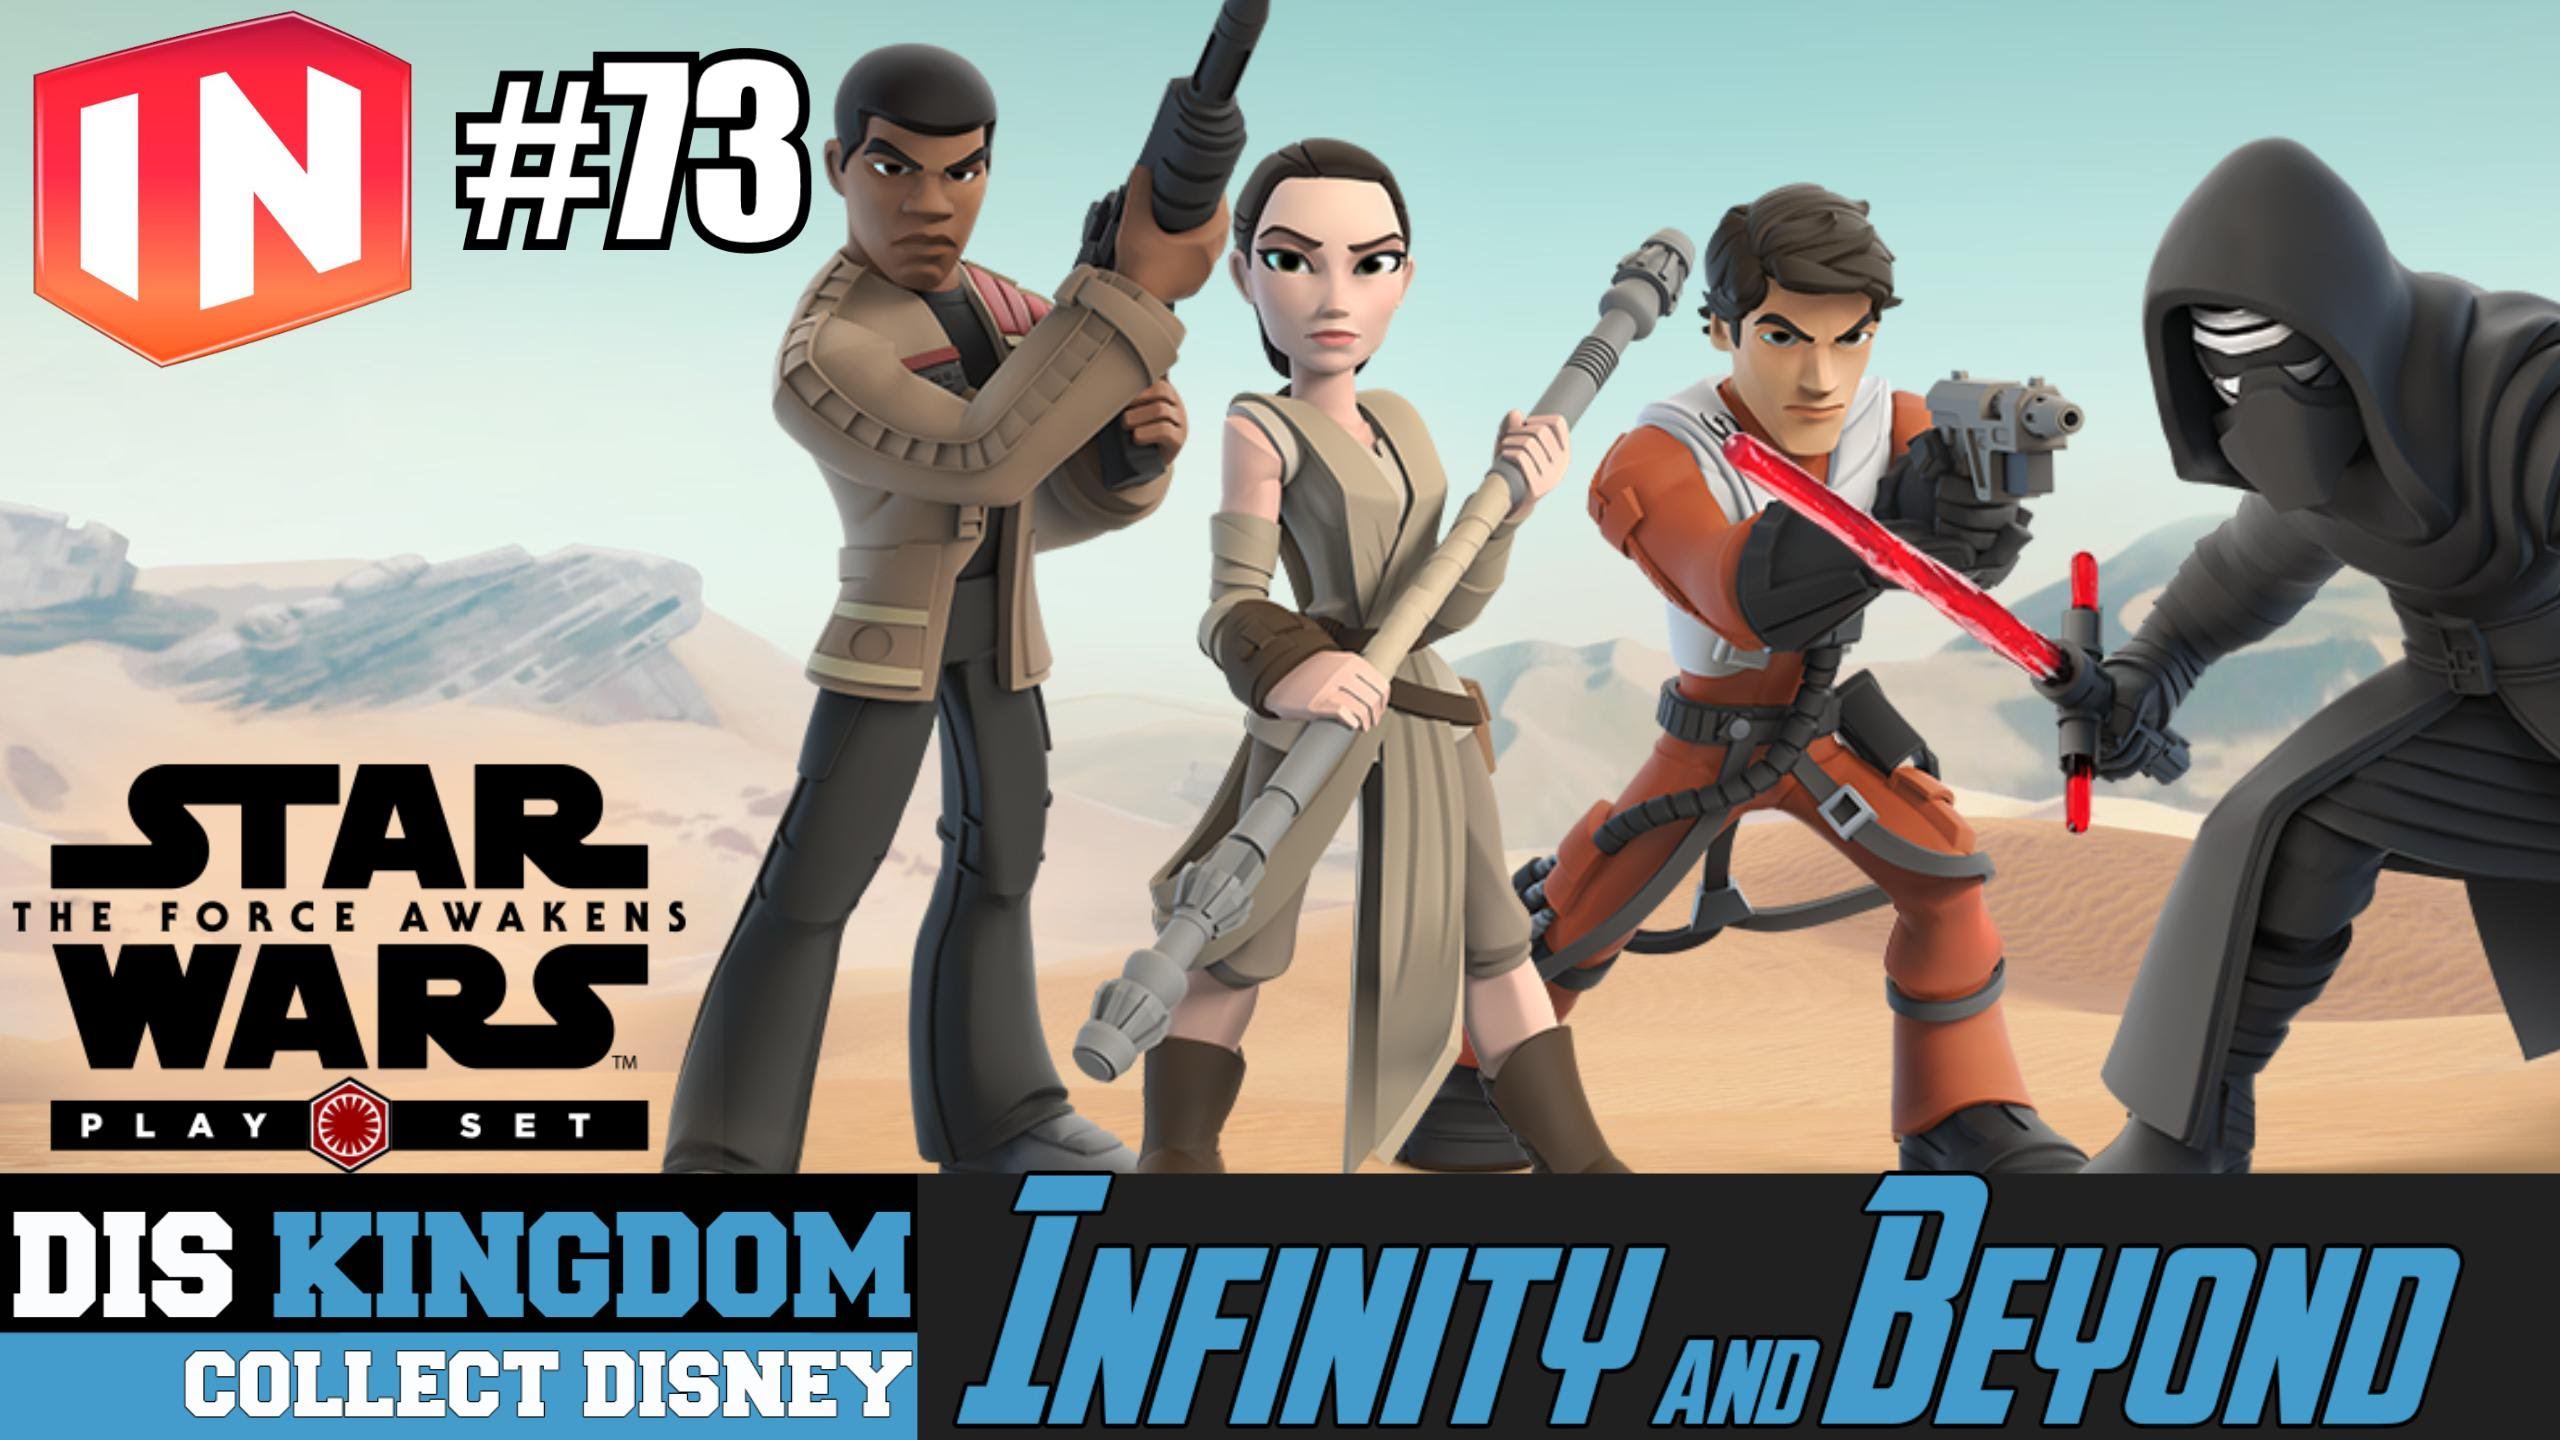 Disney Infinity 3.0 & Beyond #73 – Star Wars: The Force Awakens Review